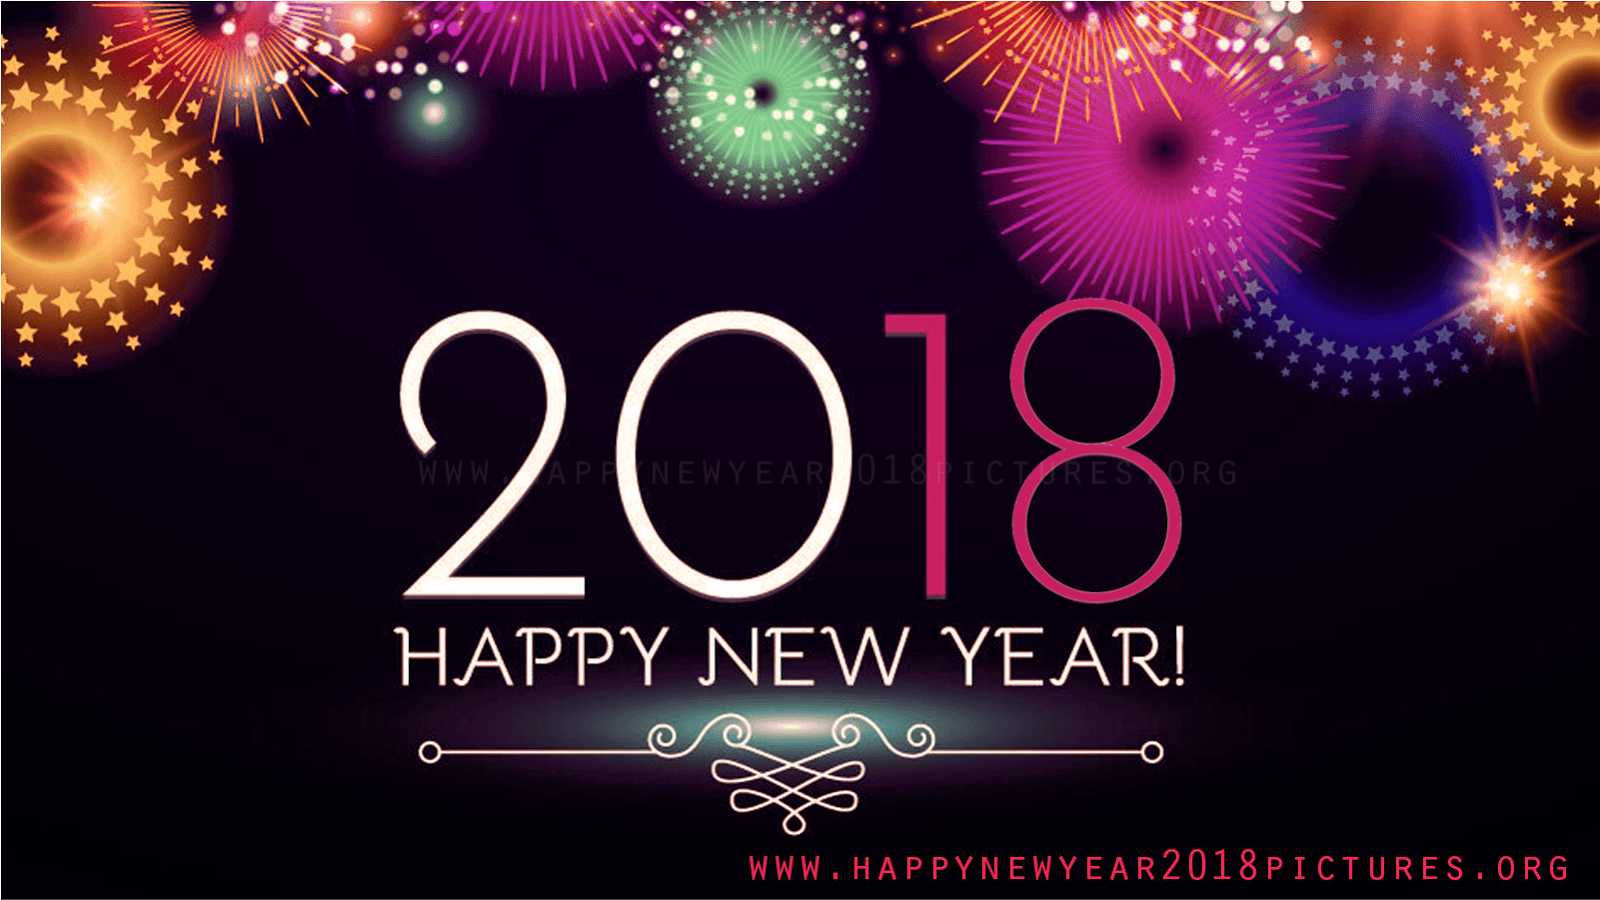 new year 2018 animated gif pictures wallpapers flash cards images